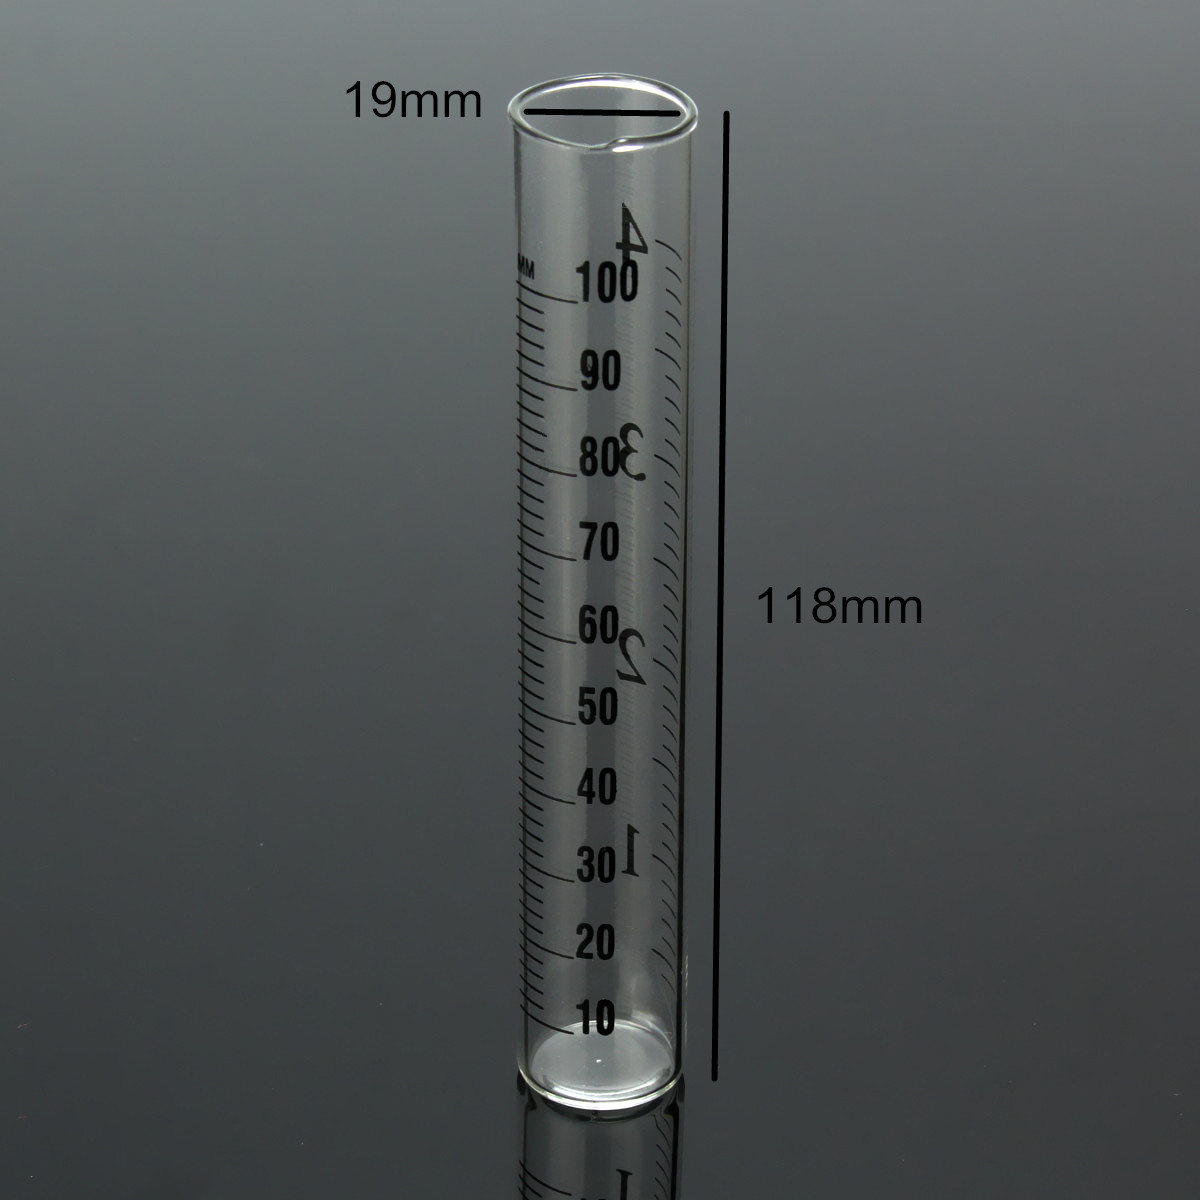 4 Inch Capacity Glass Rain Gauge Replacement Tube Outdoor Home